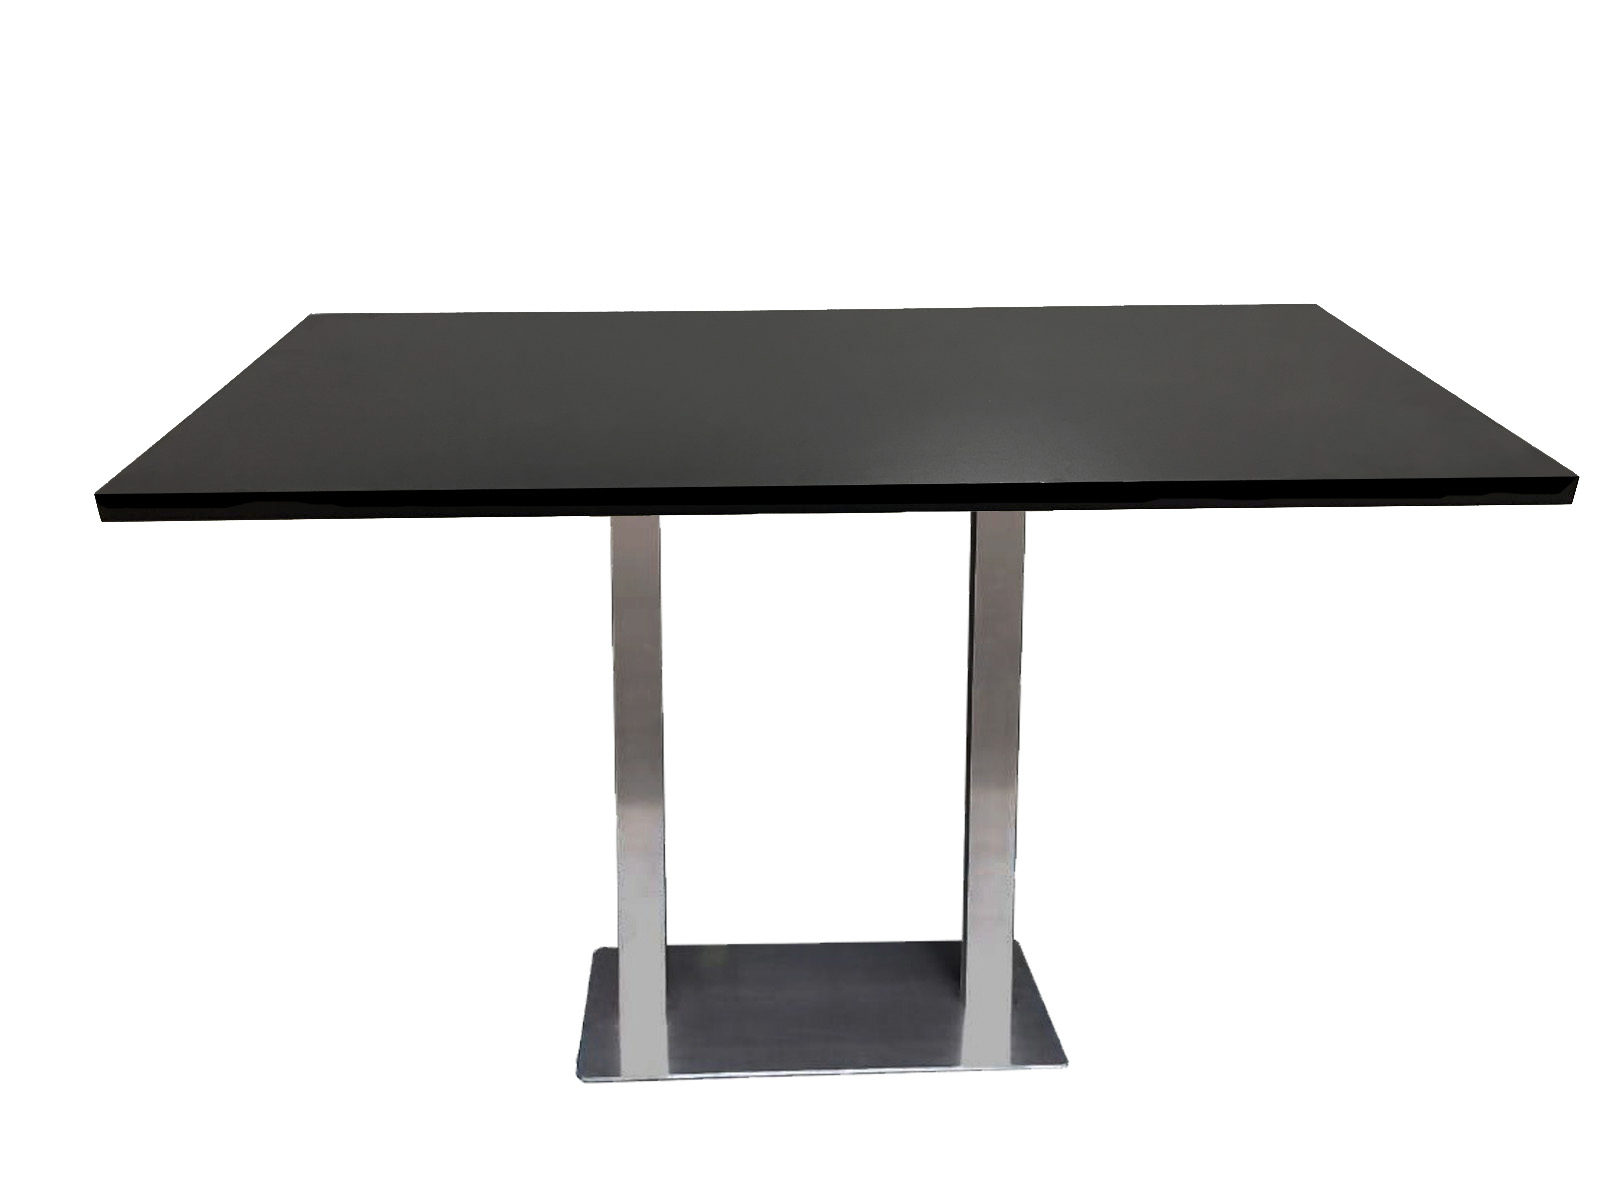 Polar High Black Table_091018